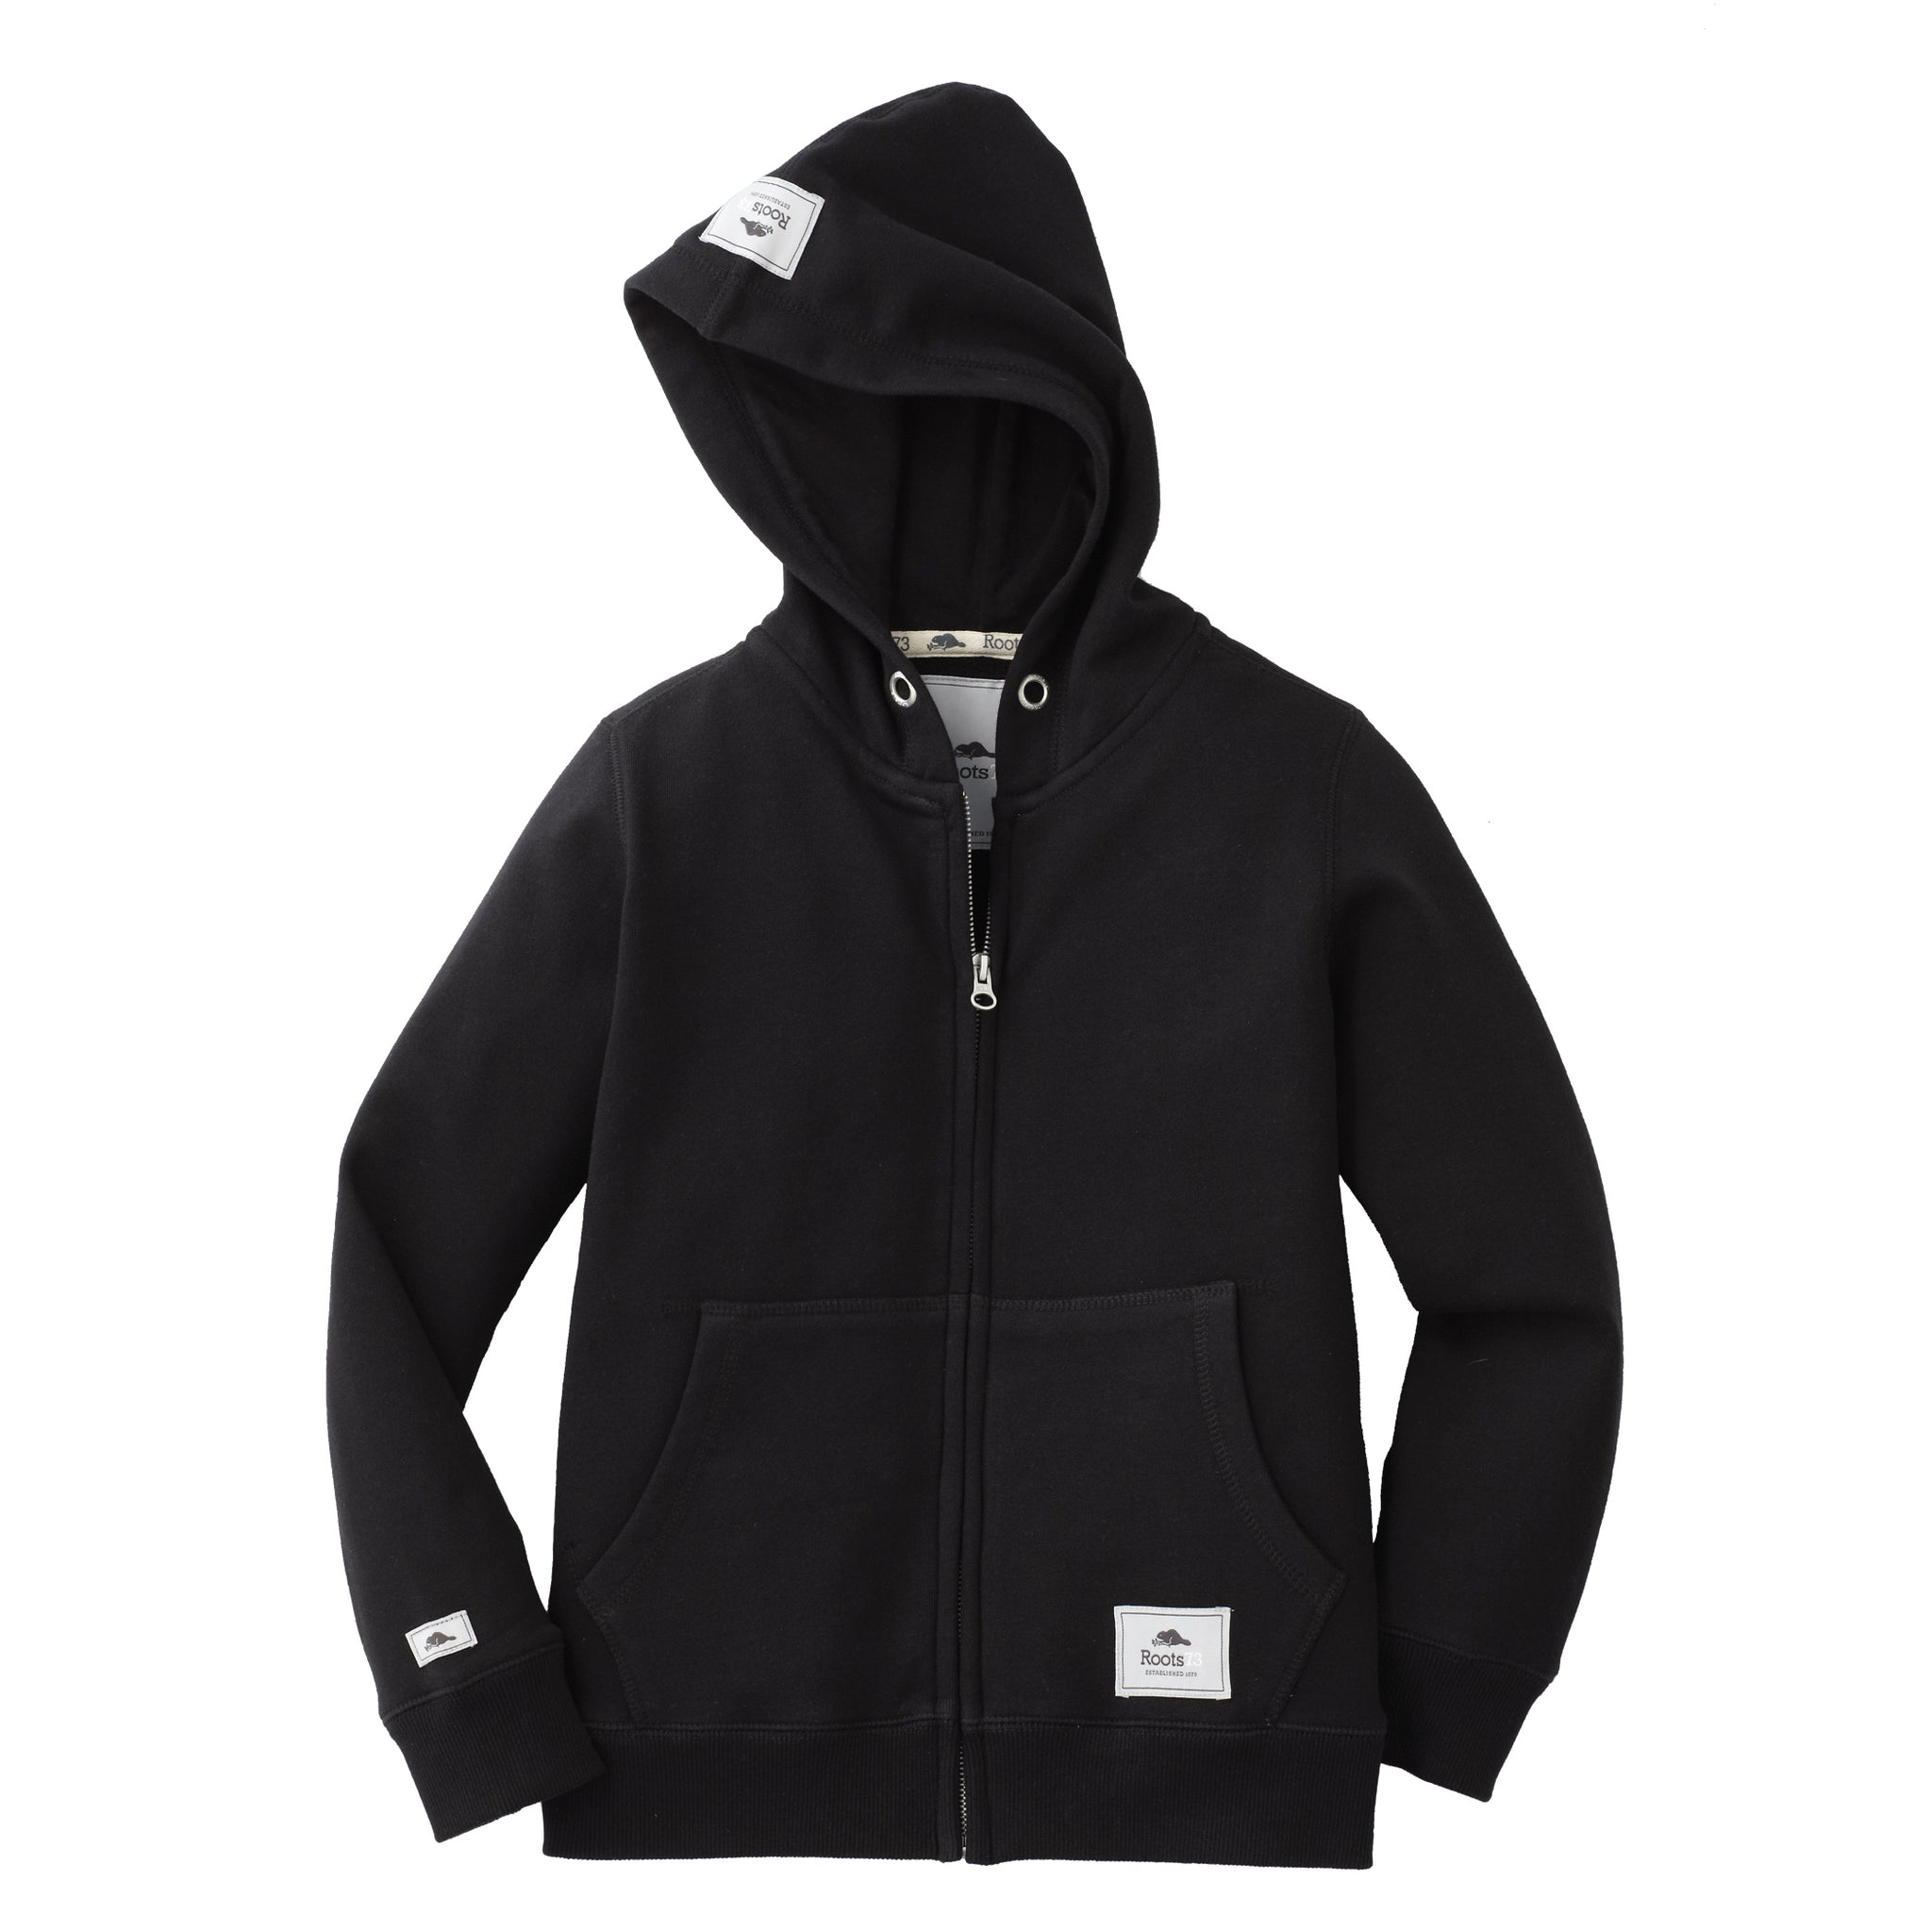 ROOTS73 YOUTH BROCKTON FLEECE HOODY